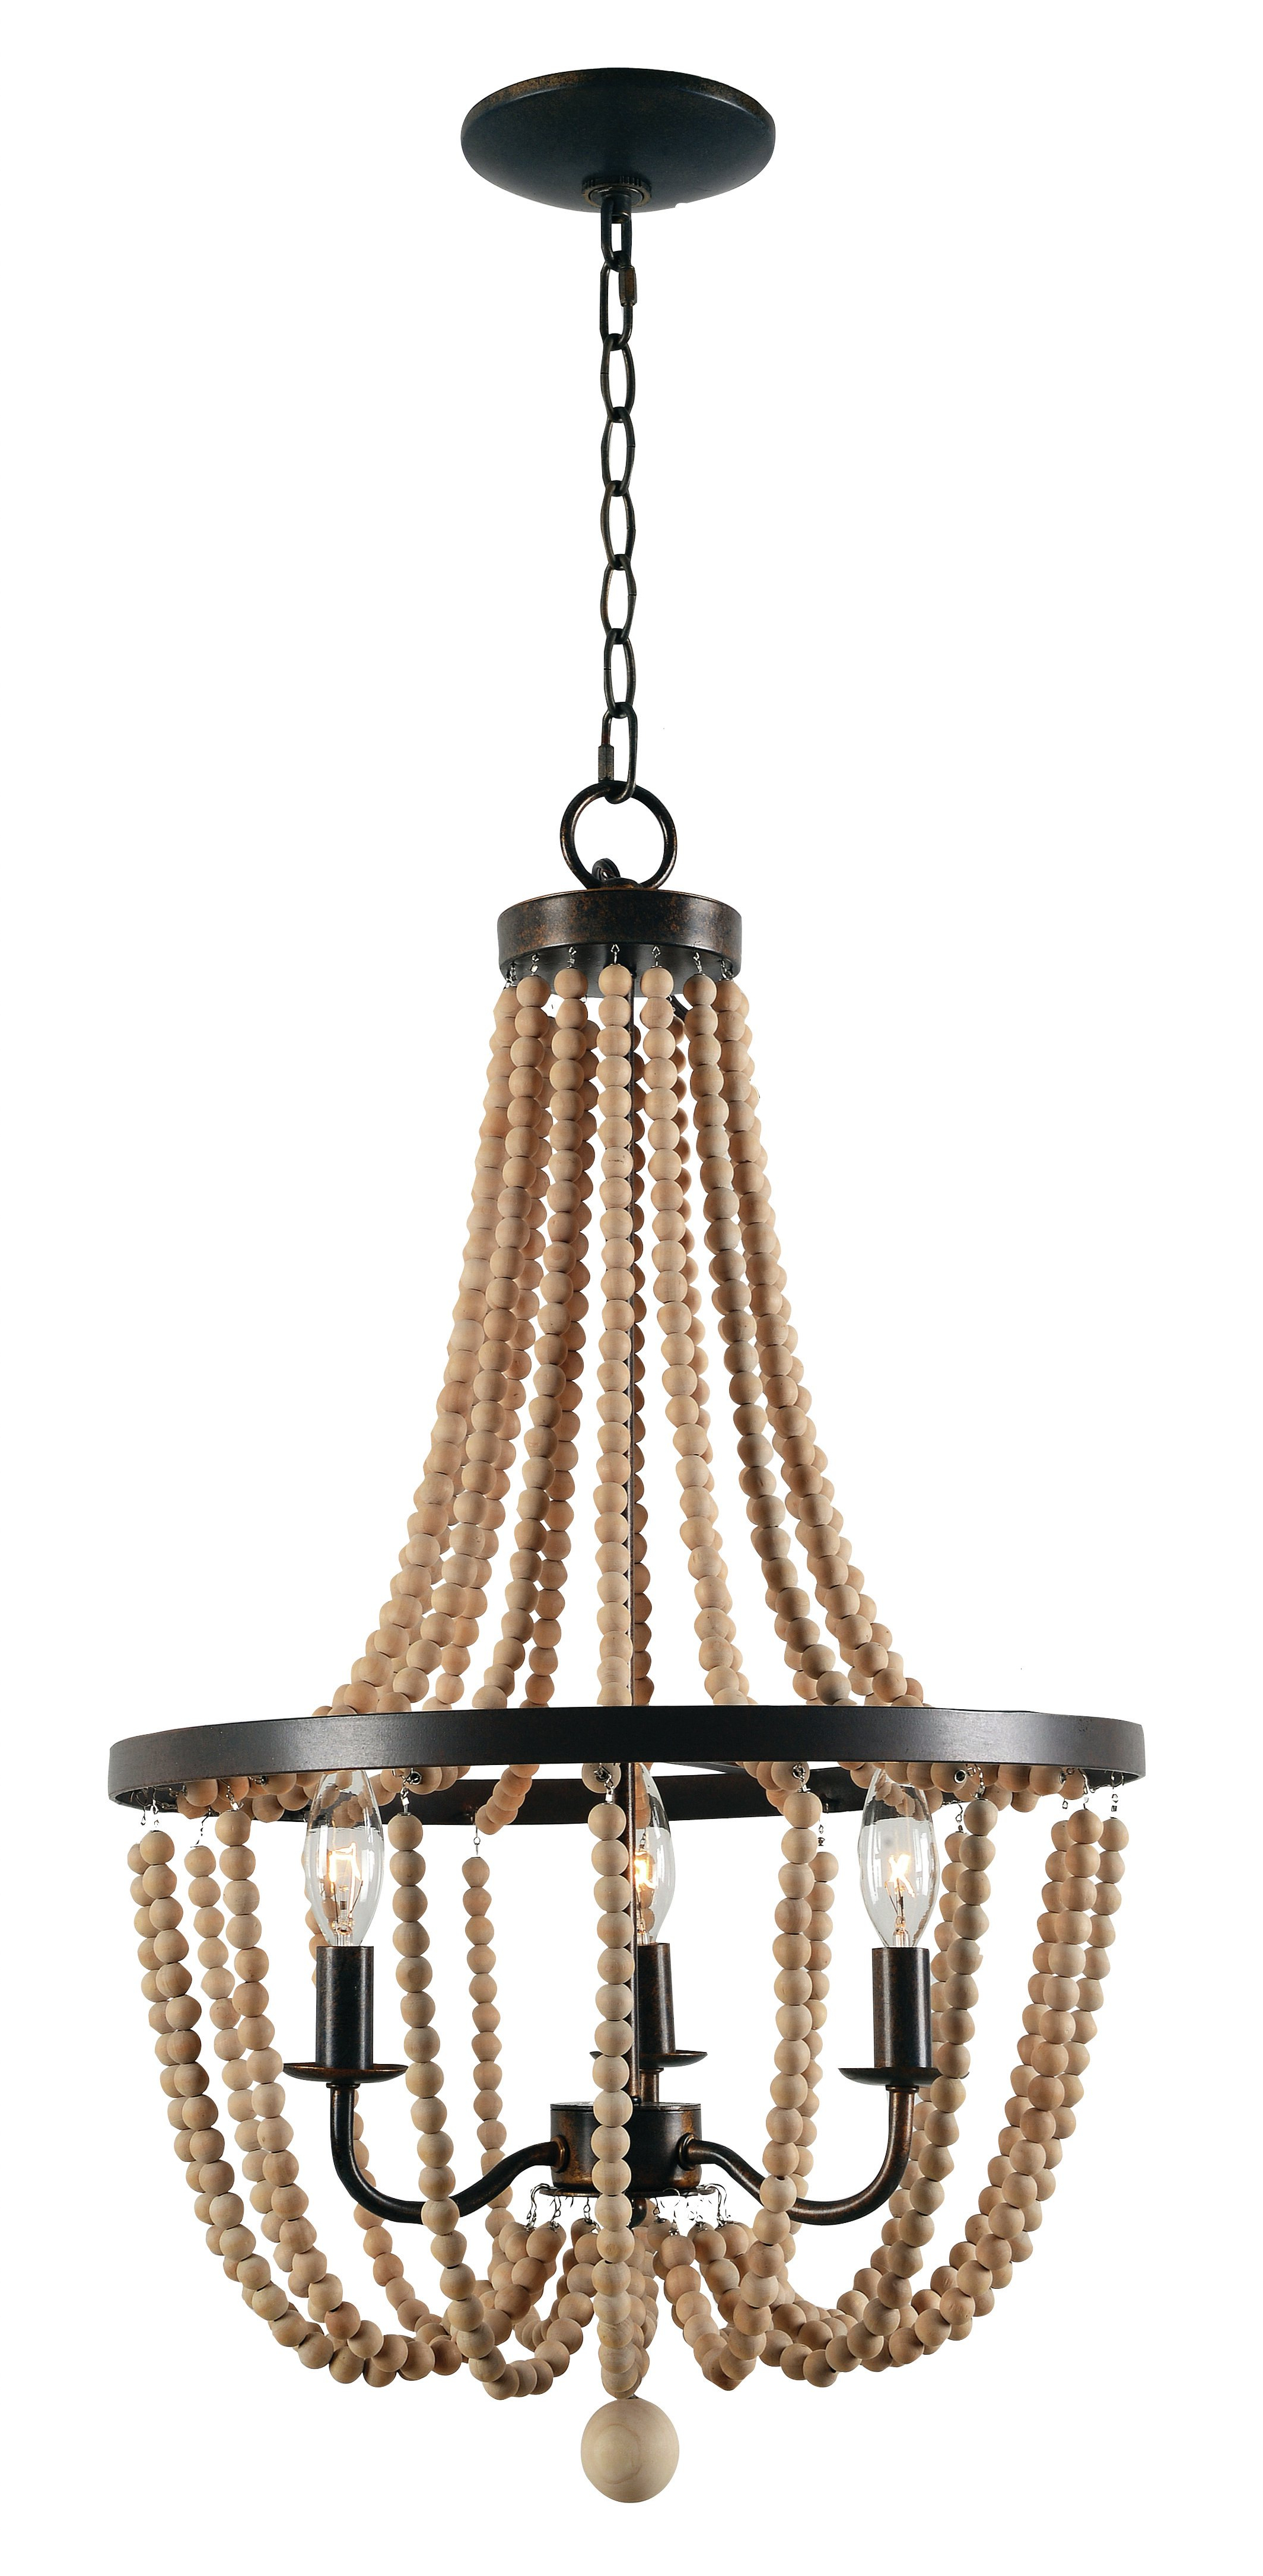 Newest Nehemiah 3 Light Empire Chandeliers Pertaining To Nehemiah 3 Light Empire Chandelier (Gallery 1 of 20)